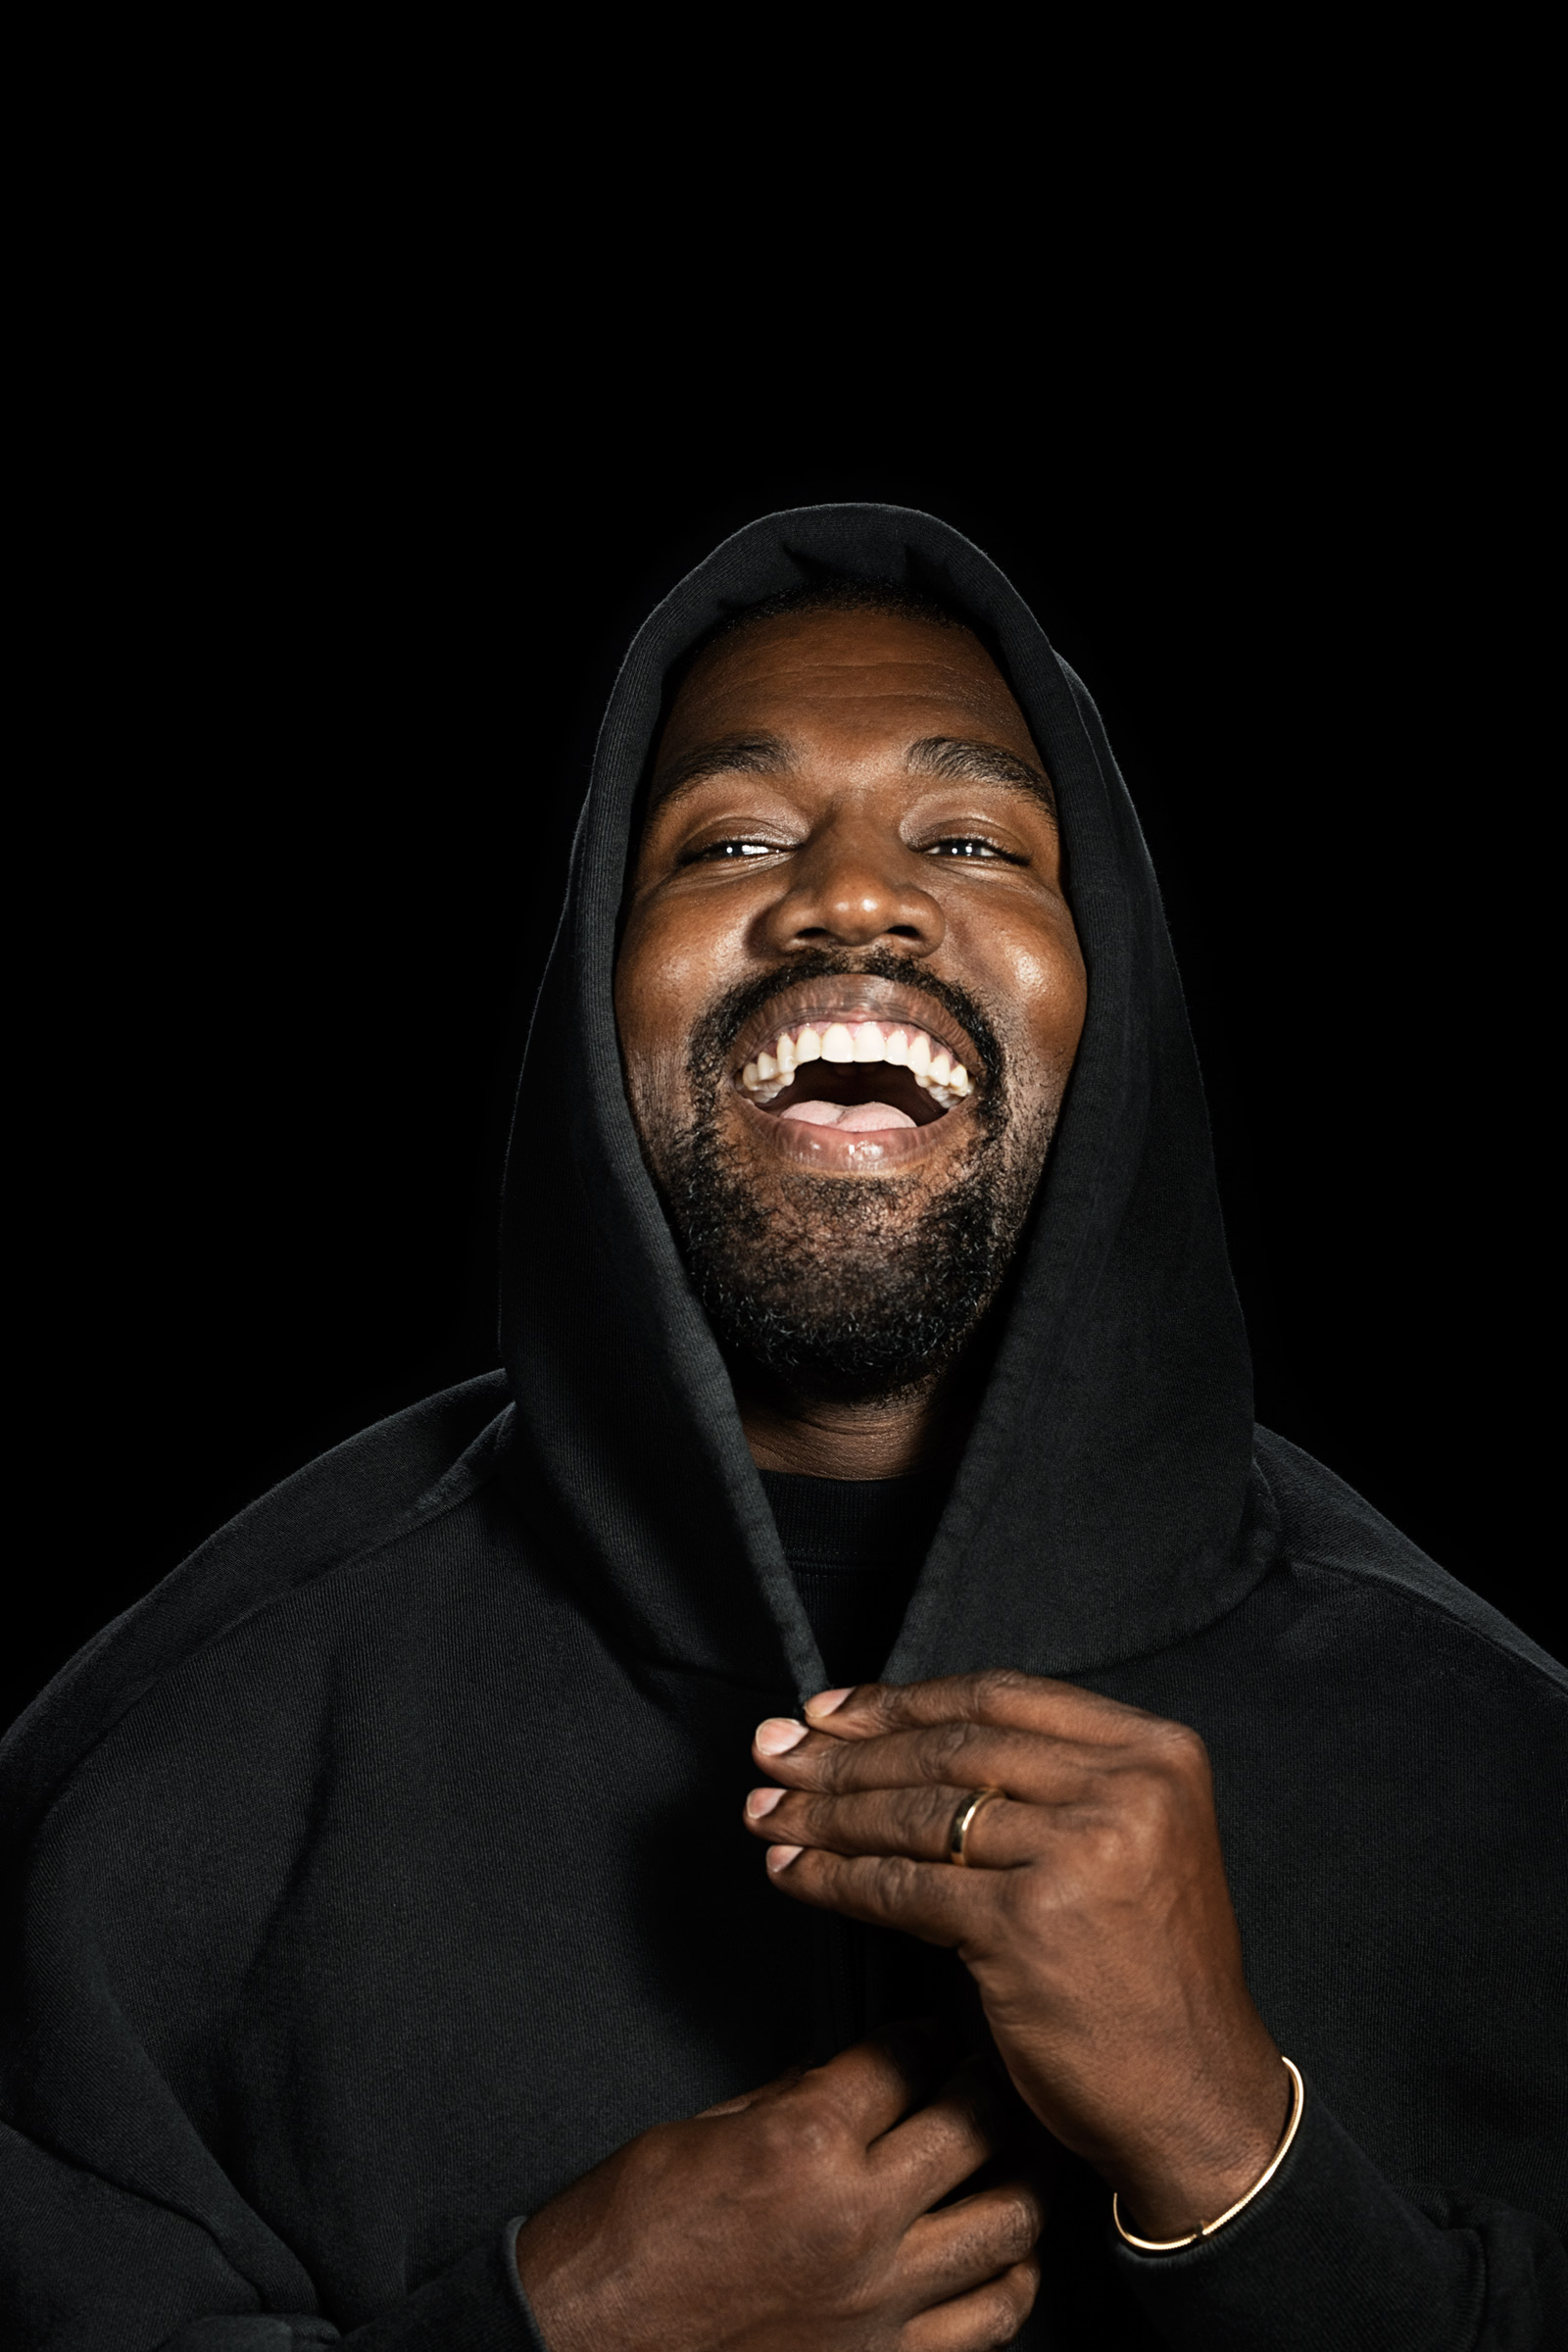 cut-276-Kanye-West-by-web_2019